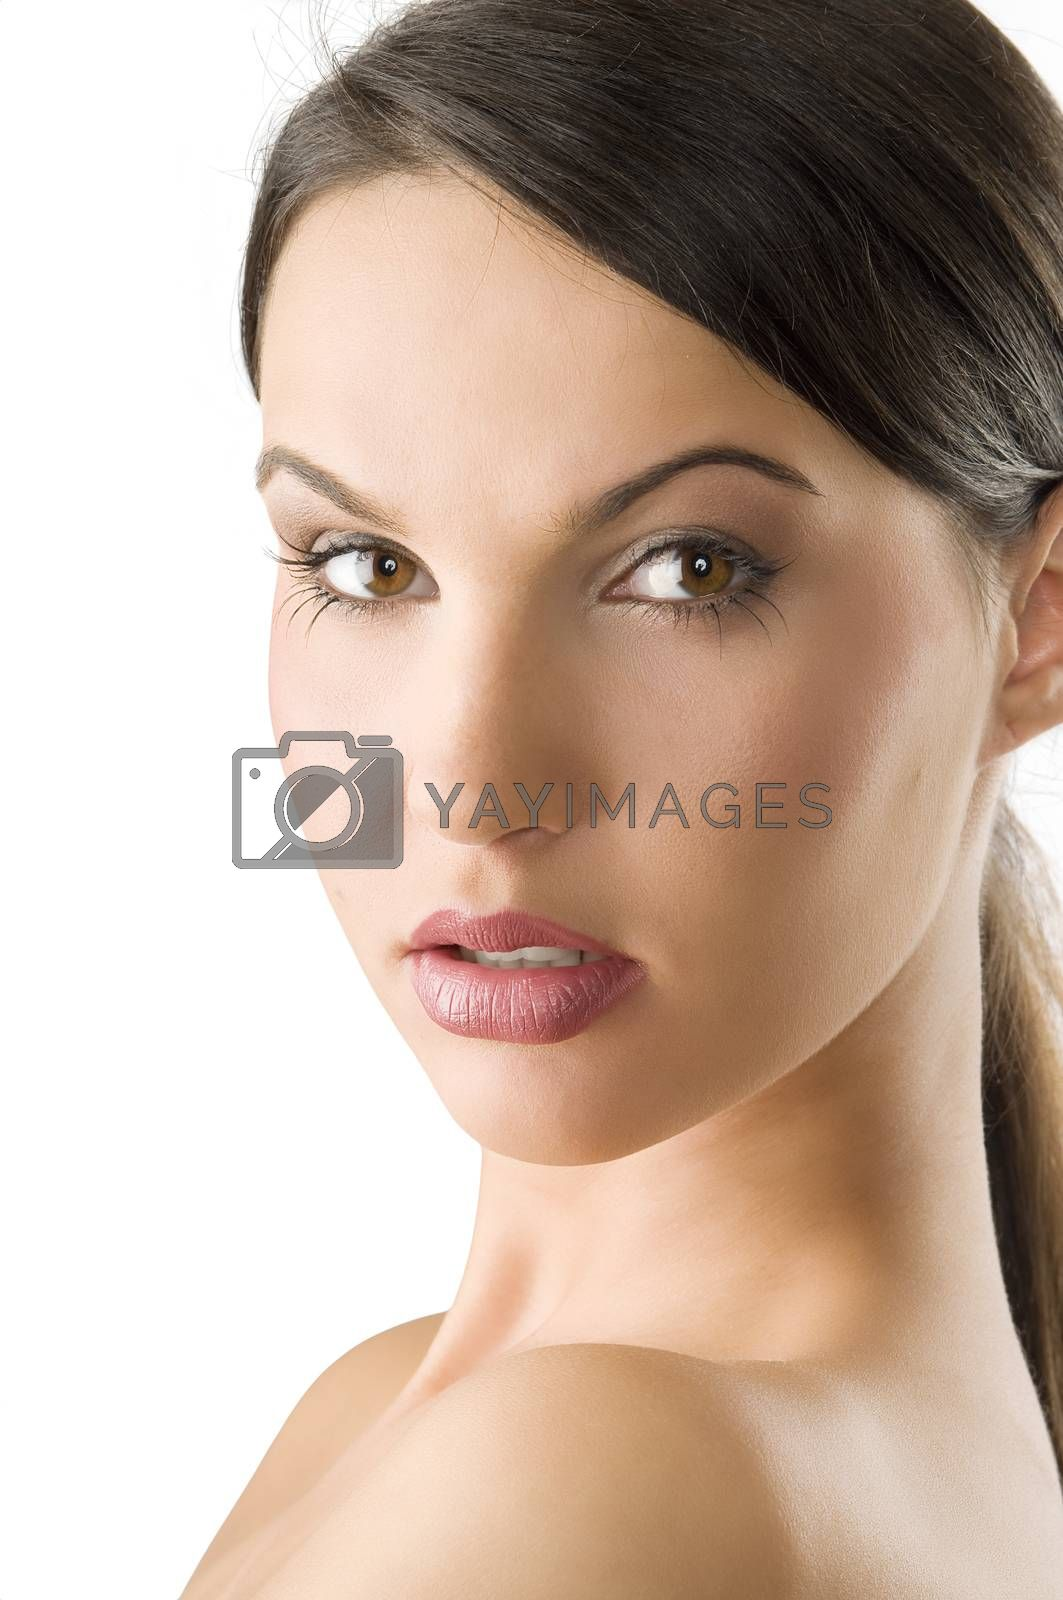 Royalty free image of almost perfect face by fotoCD